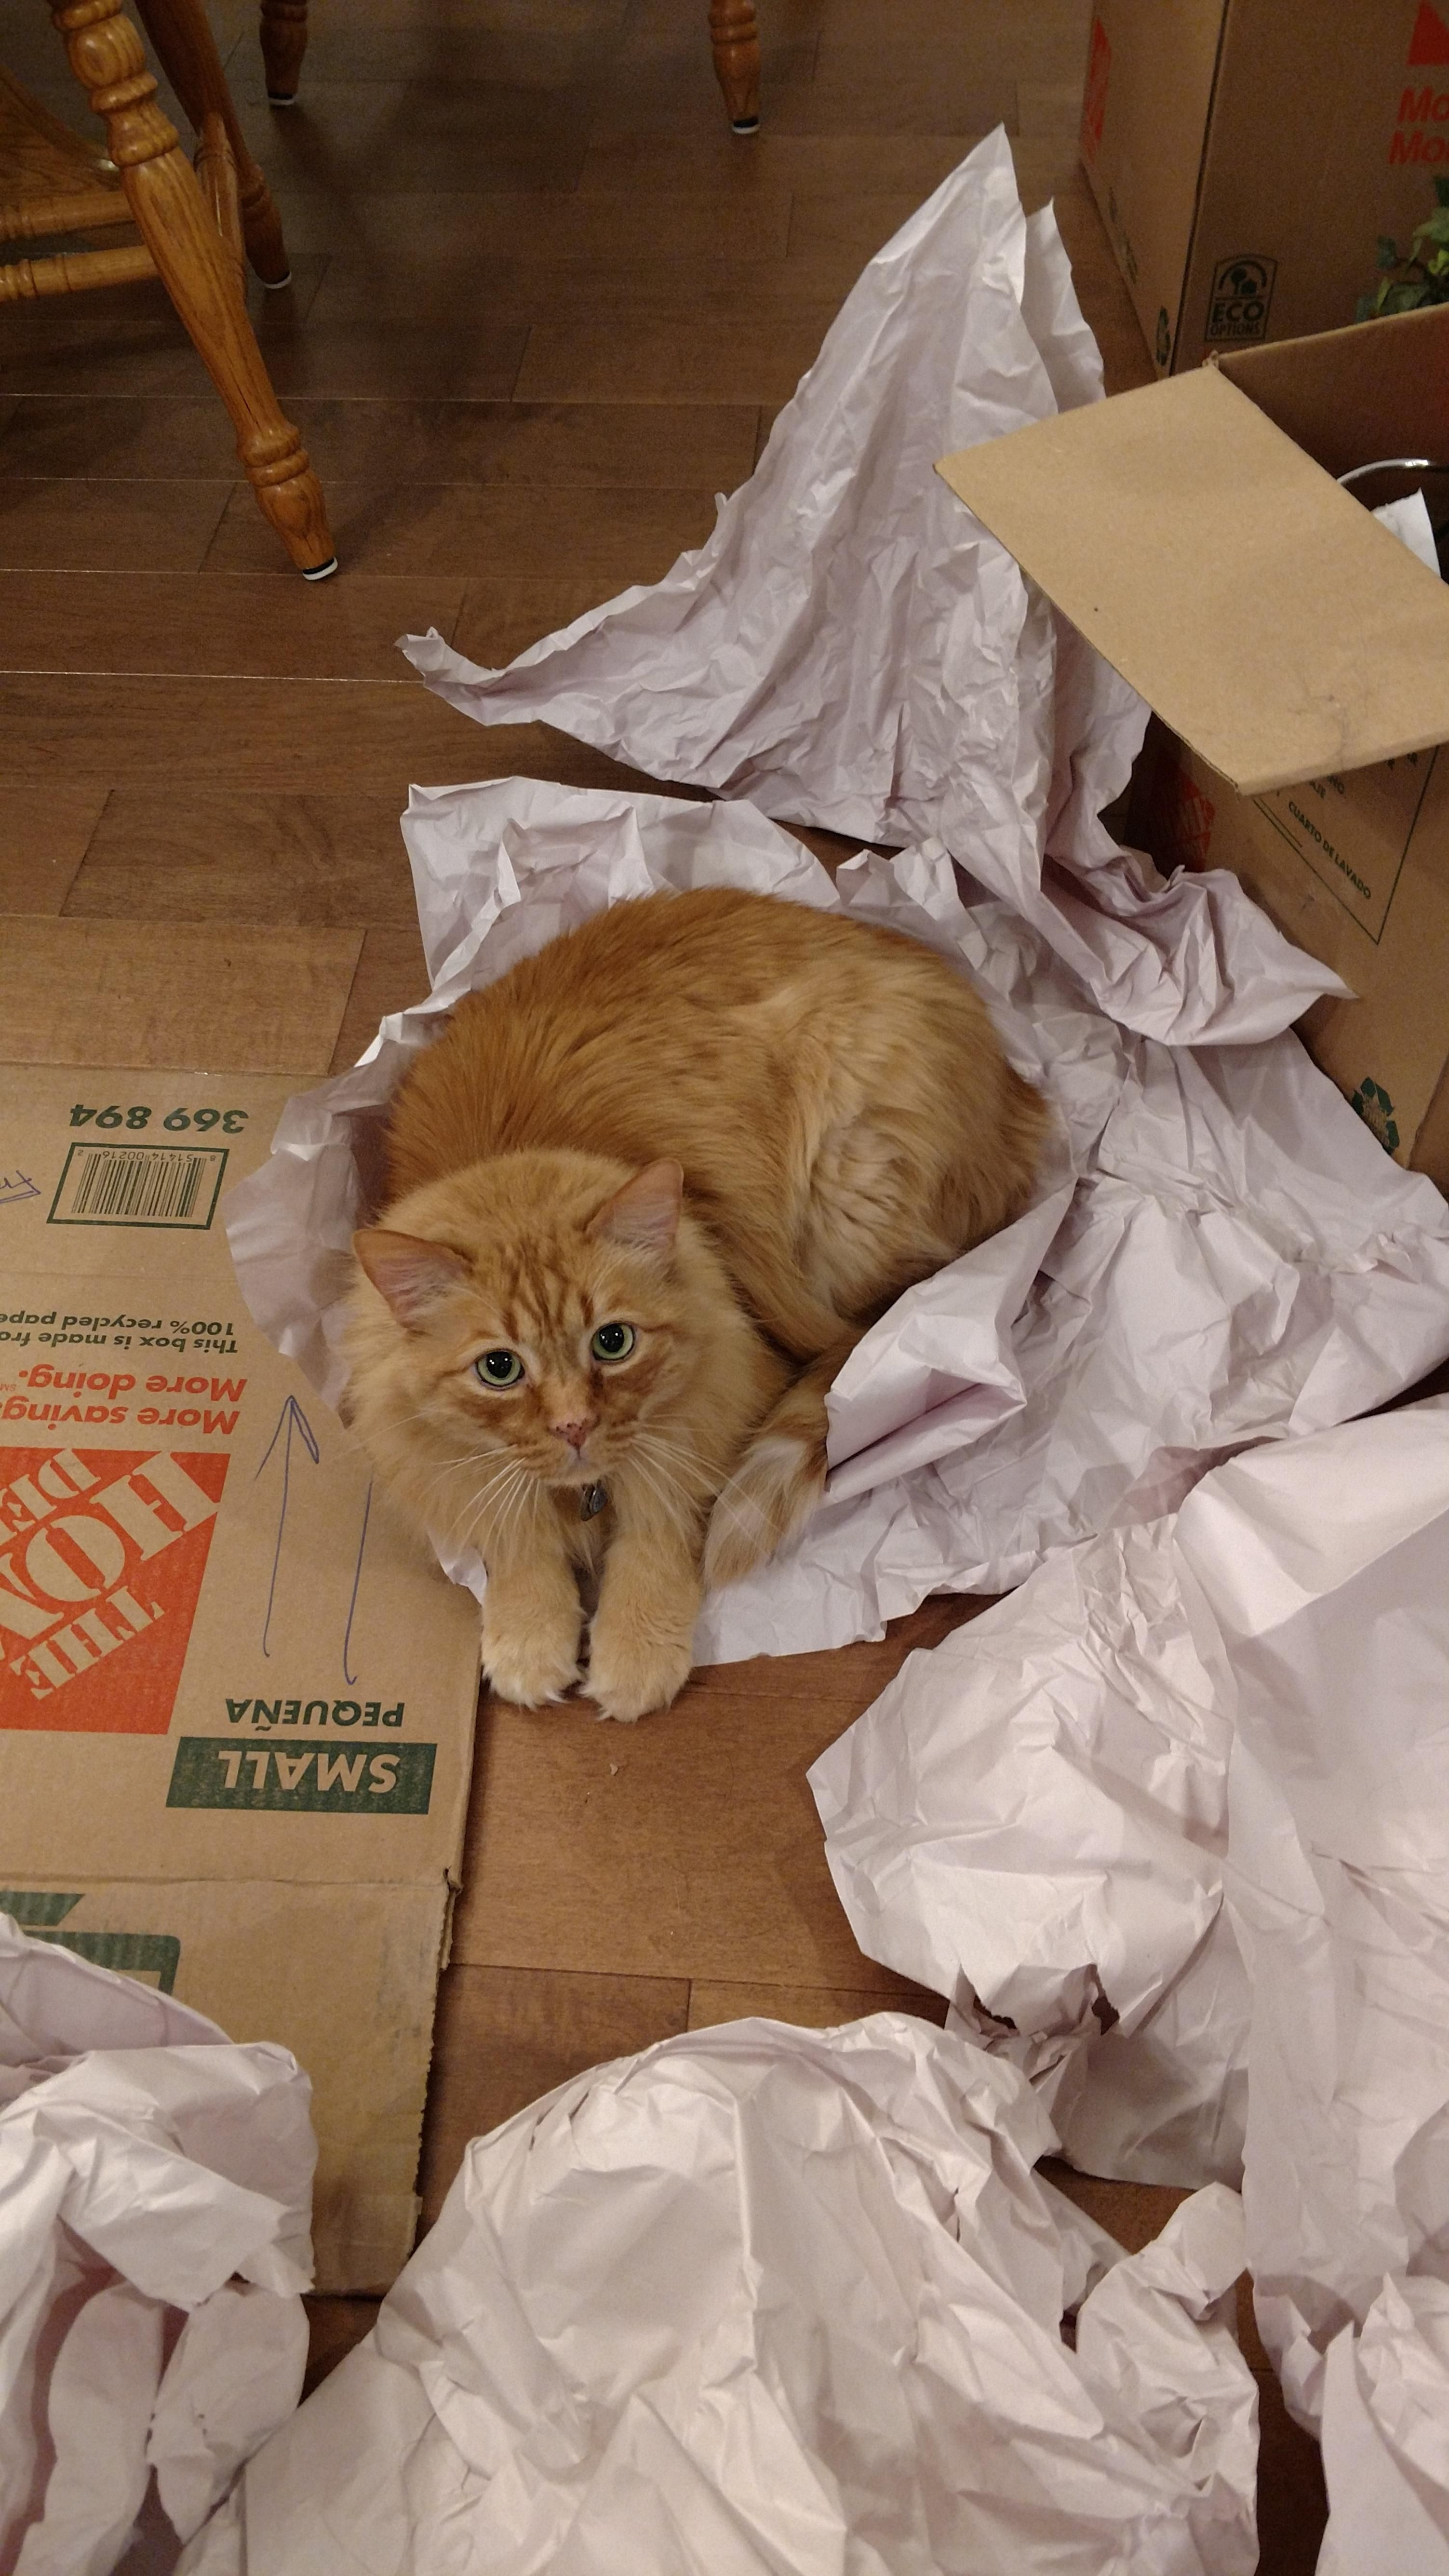 Over 12 Years Old And Still Acts Like A Kitten With Paper It S All His Http Ift Tt 2sybsnw Kitten Funny Cats 12 Year Old